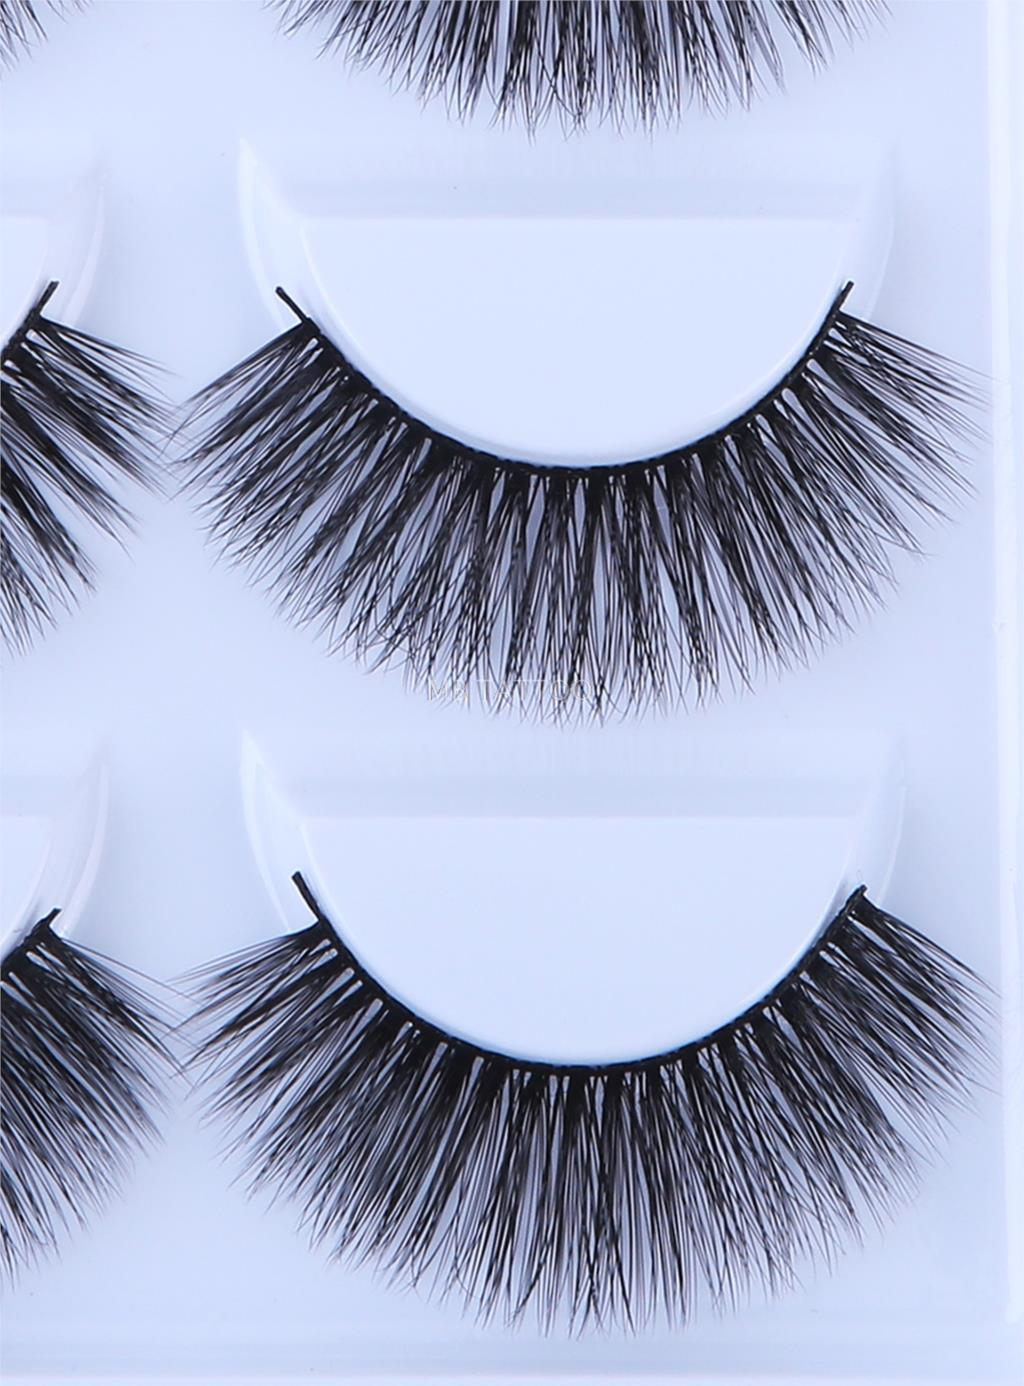 HTB10X7IQ6DpK1RjSZFrq6y78VXag New 3D 5 Pairs Mink Eyelashes extension make up natural Long false eyelashes fake eye Lashes mink Makeup wholesale Lashes